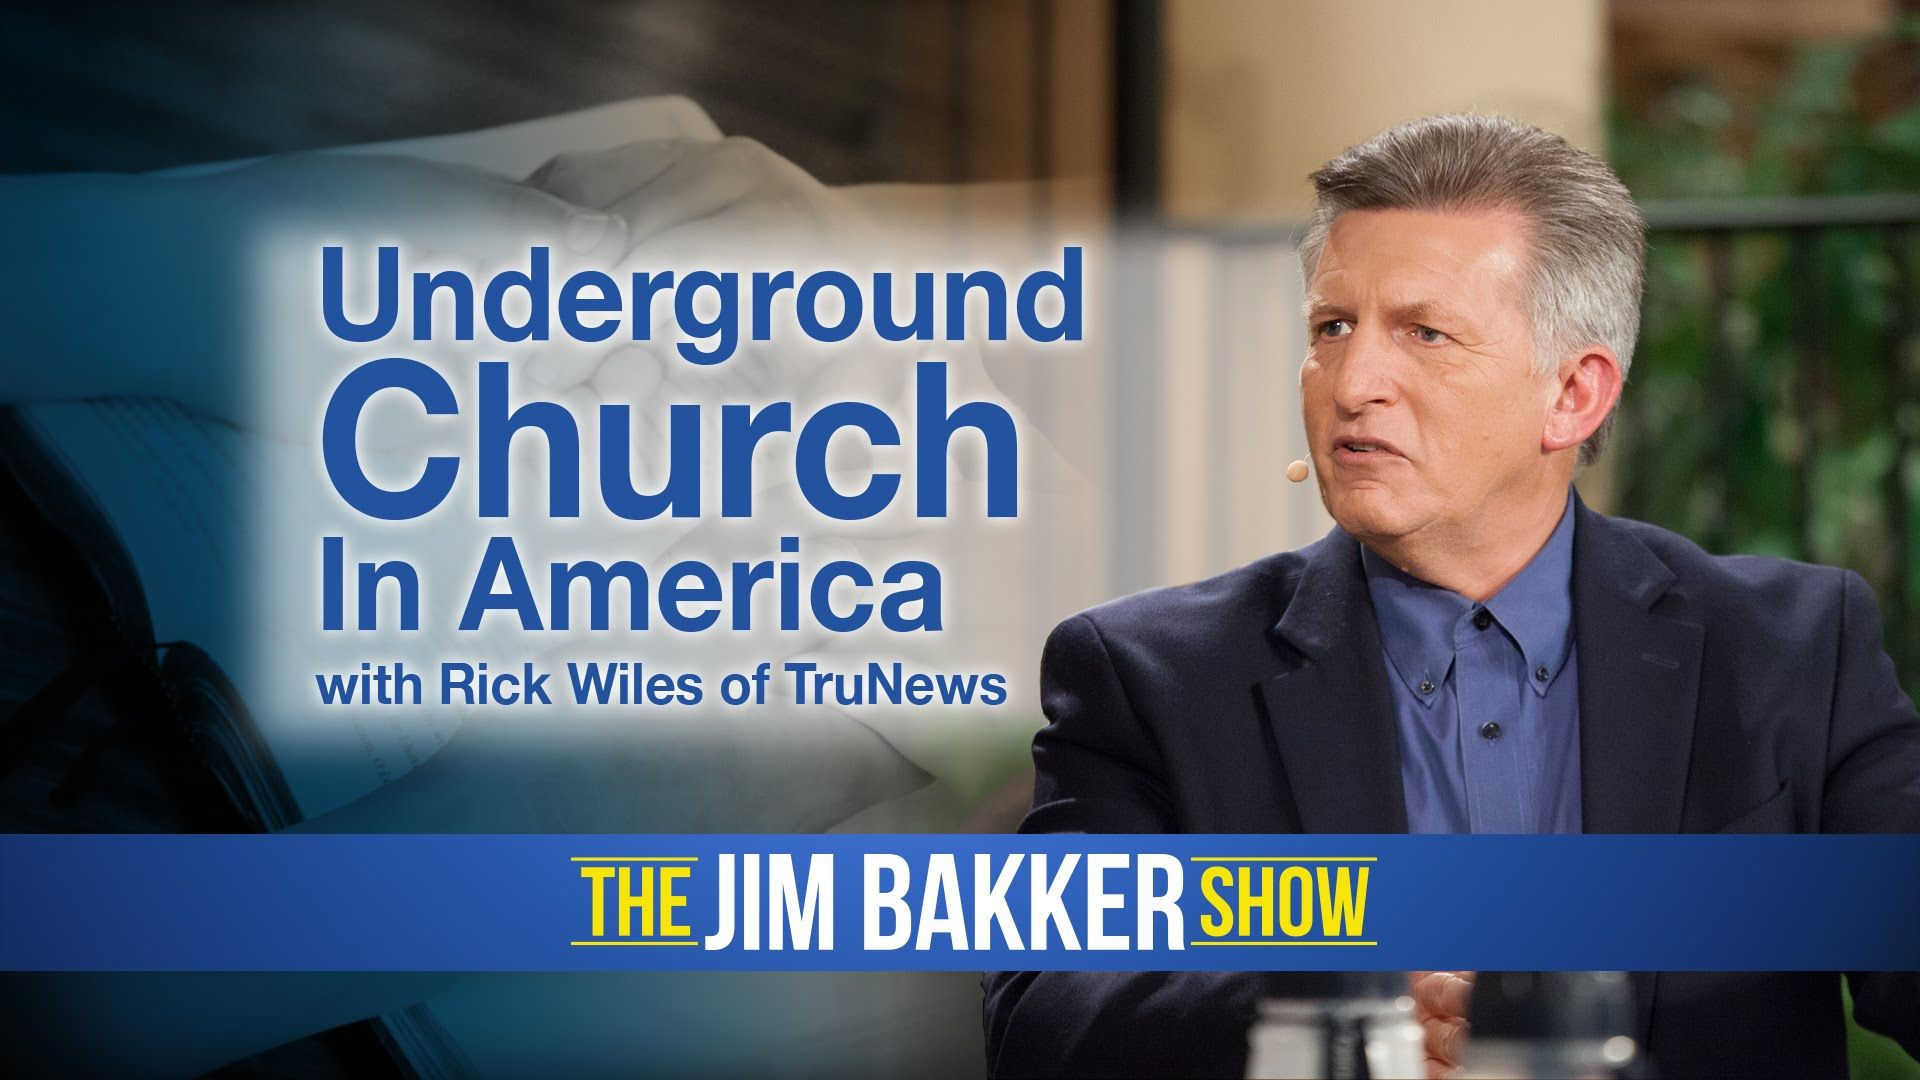 Rick wiles prophecy